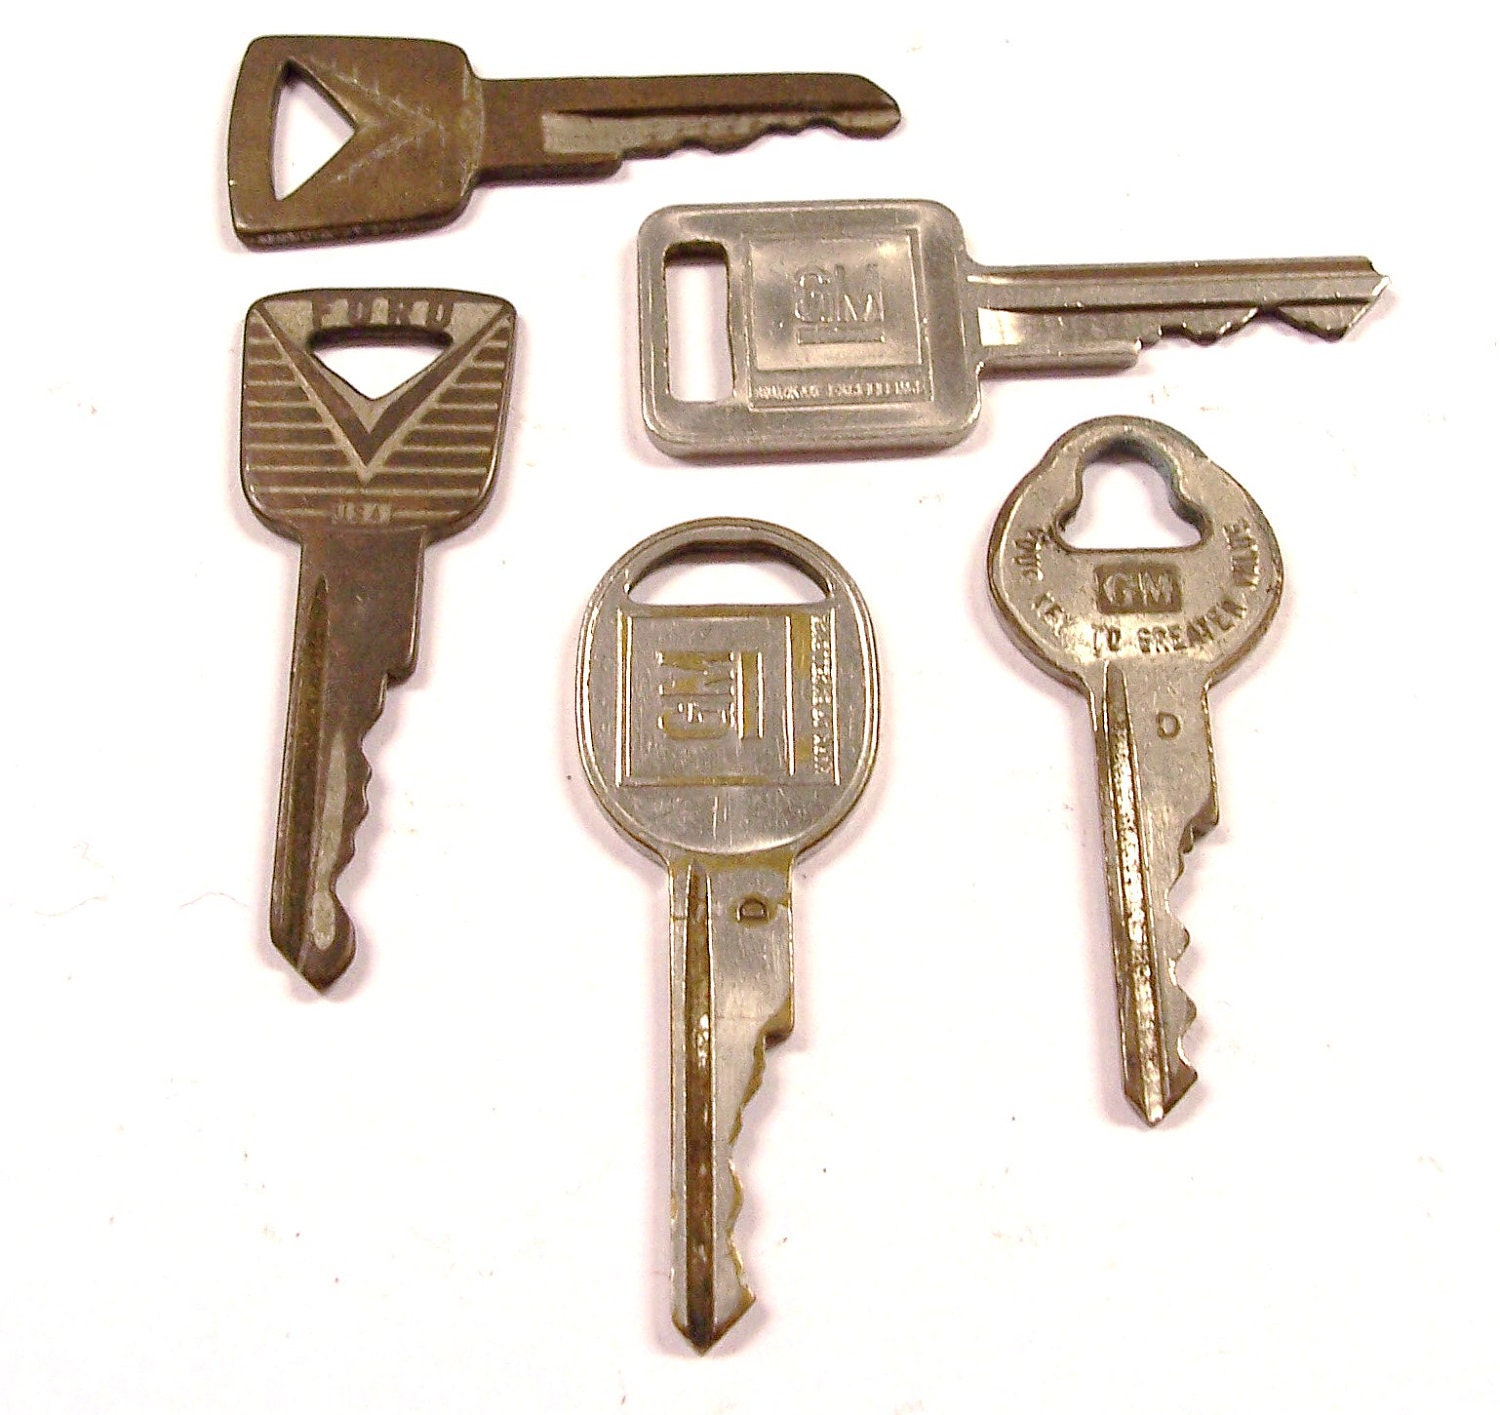 Vintage Keys Ford Gm Auto Steampunk Destash Treasures Found